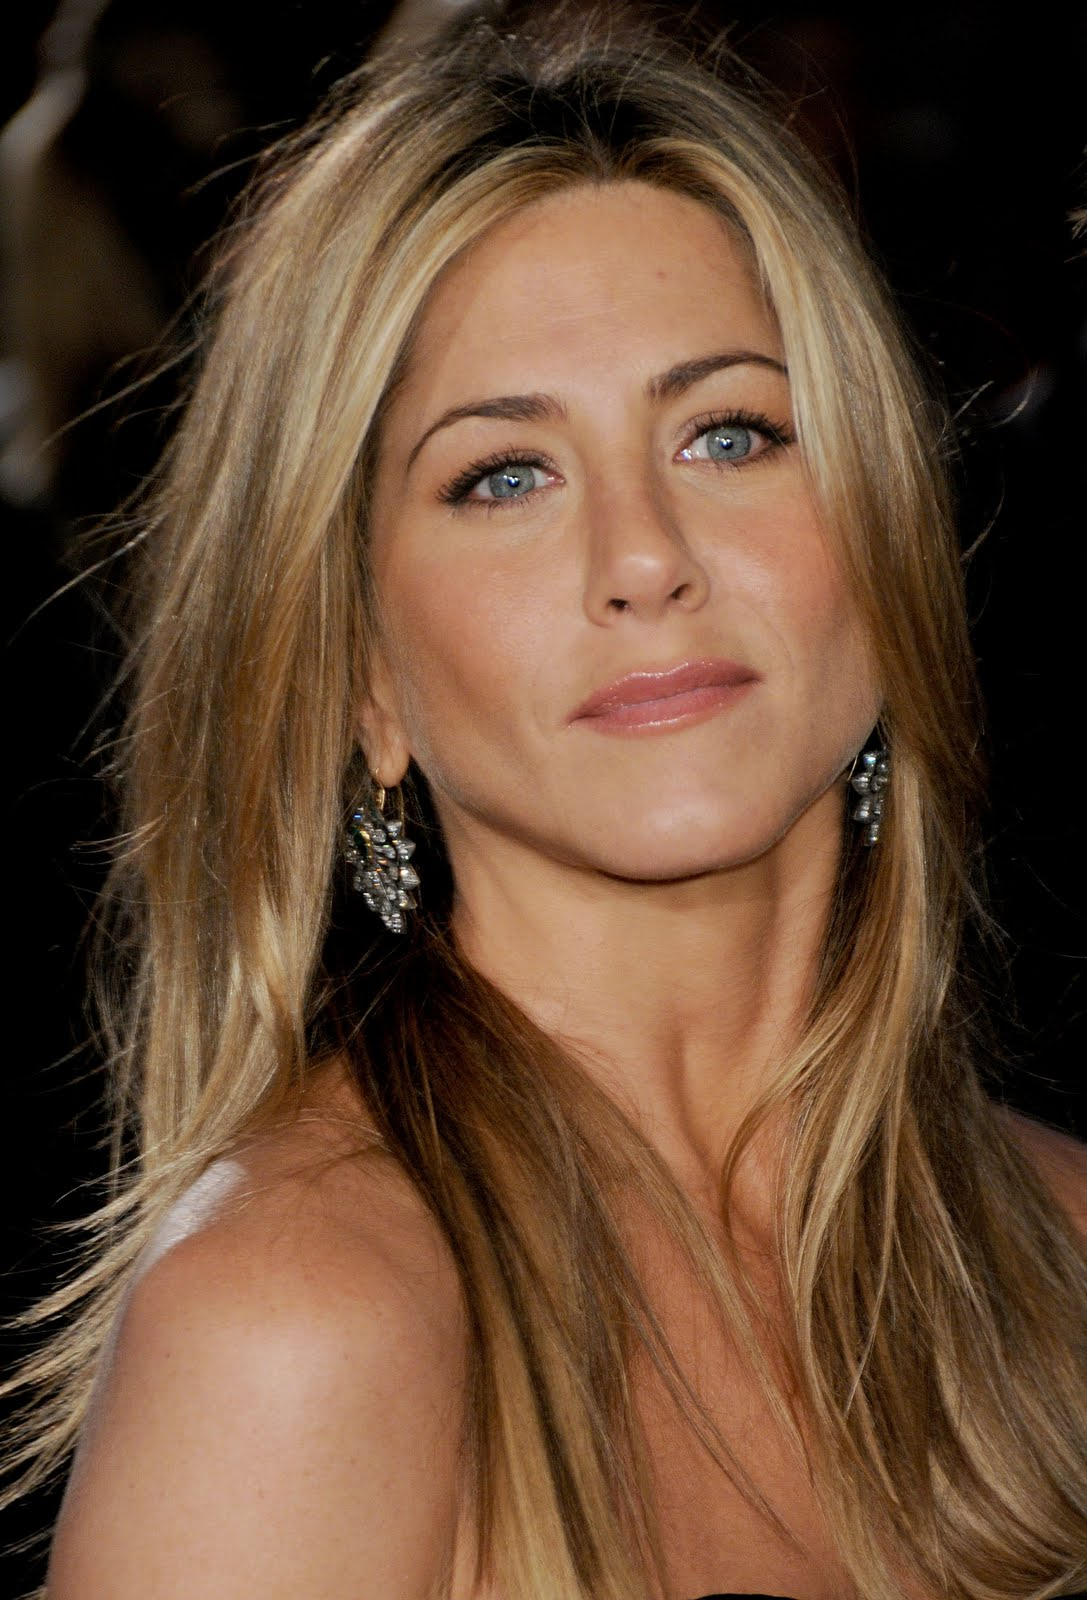 jennifer aniston special pictures 6 film actresses. Black Bedroom Furniture Sets. Home Design Ideas